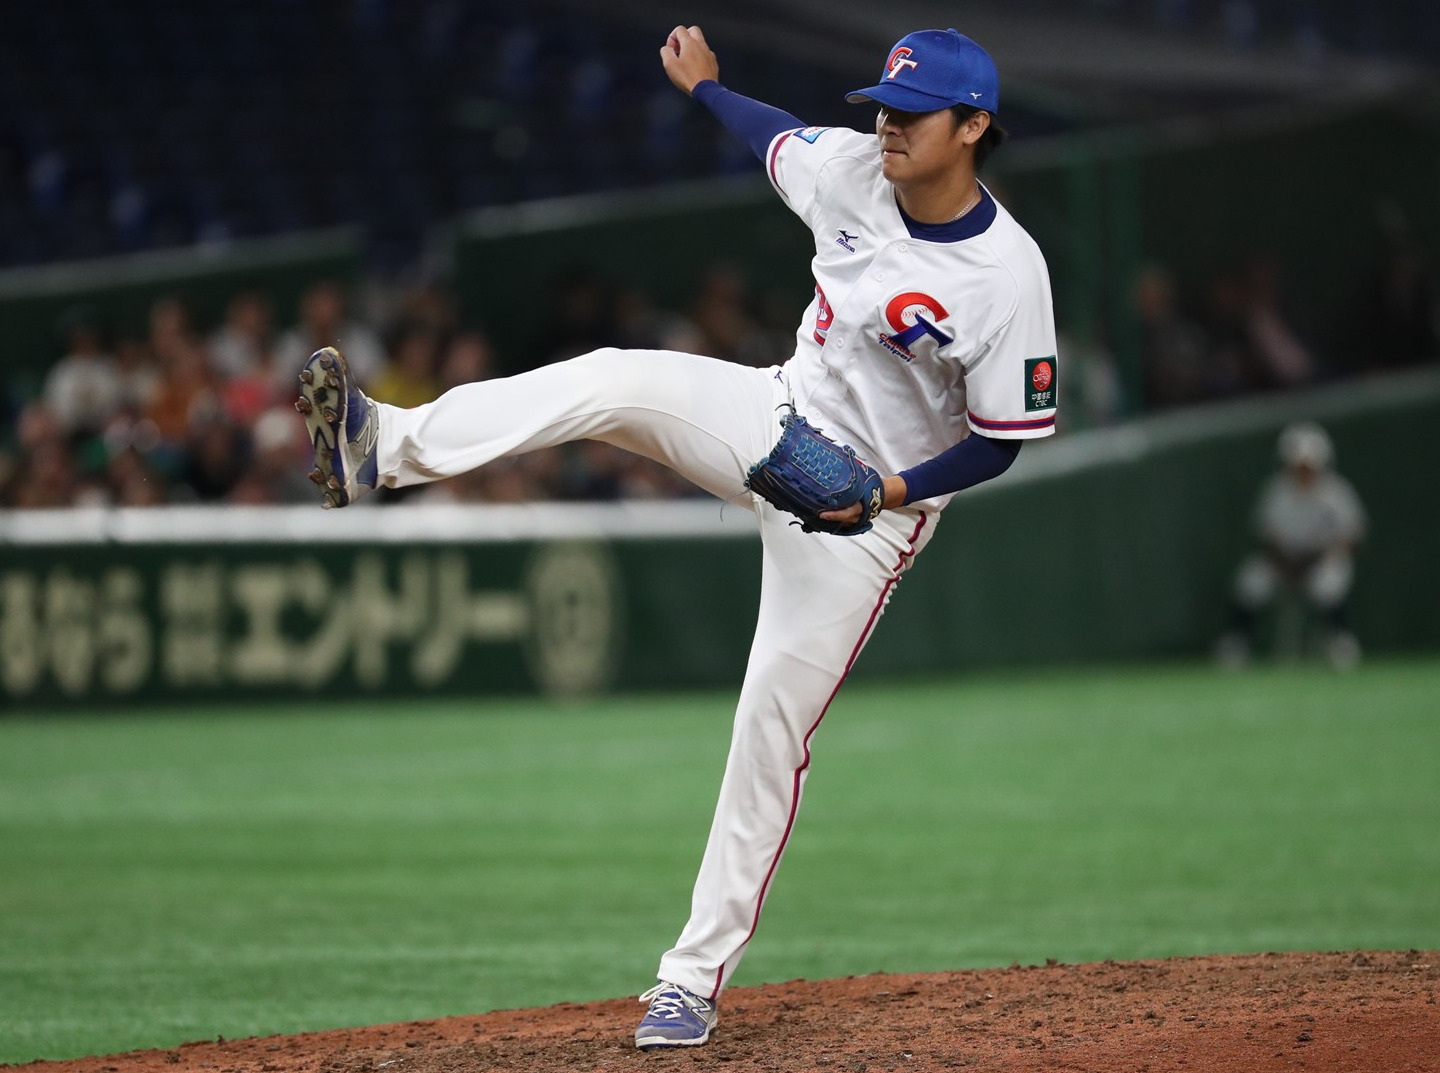 Chinese Taipei bullpen proved masterful in the late innings